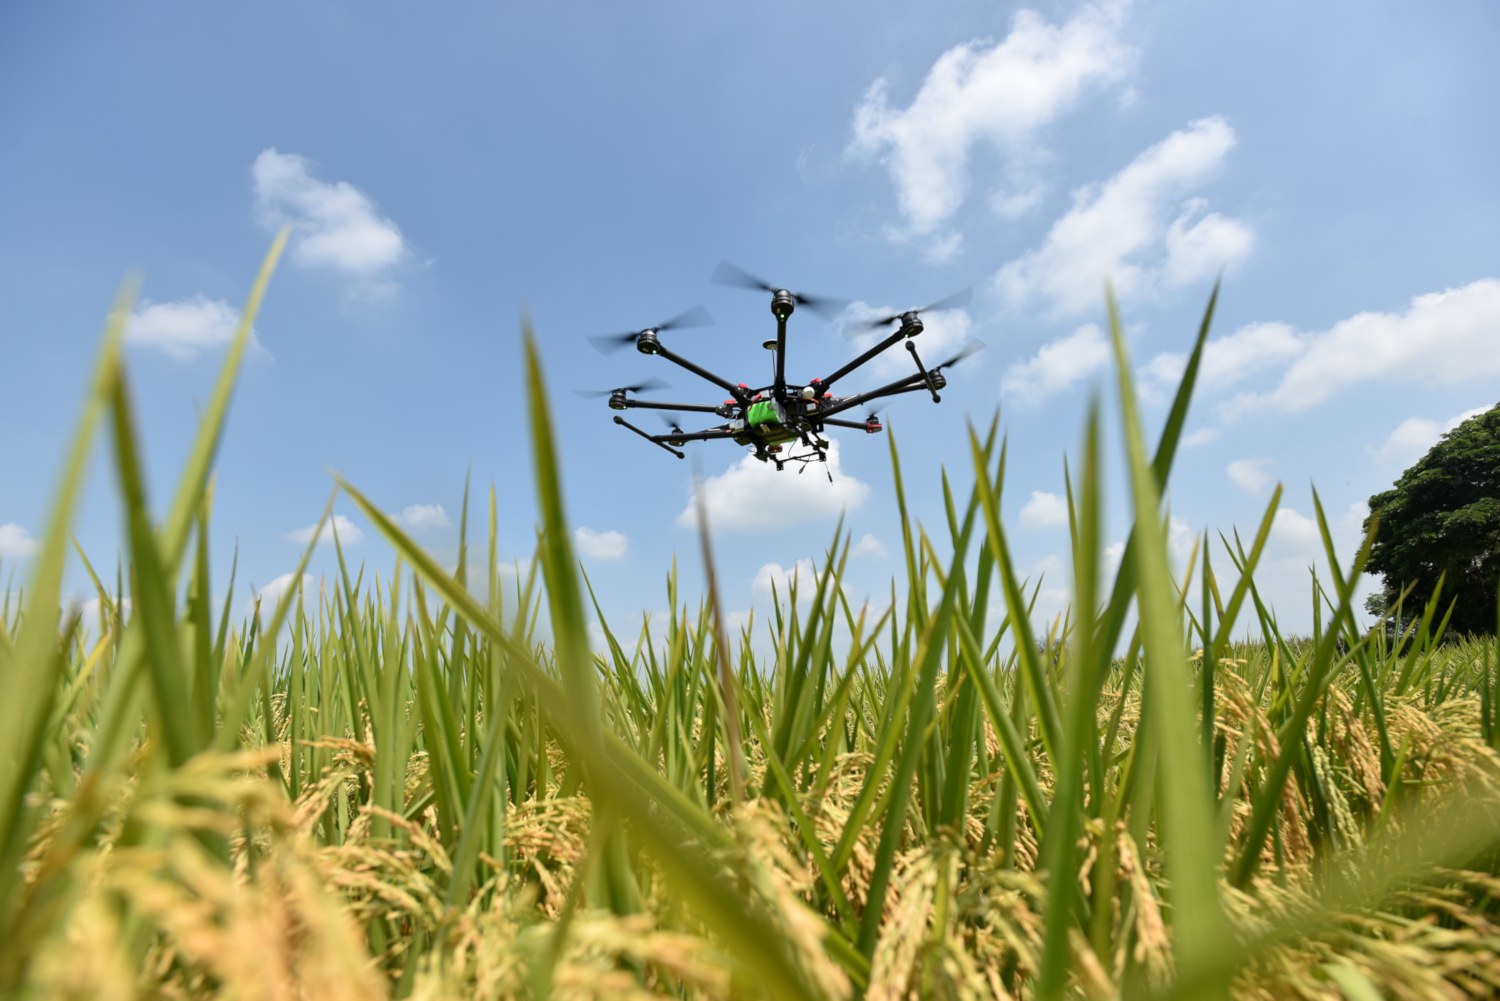 The use of drones for monitoring rice crops (credits: ©2016CIAT / Neil Palmer / Flickr Creative Commons Attribution-NonCommercial-ShareAlike 2.0 Generic (CC BY-NC-SA 2.0))